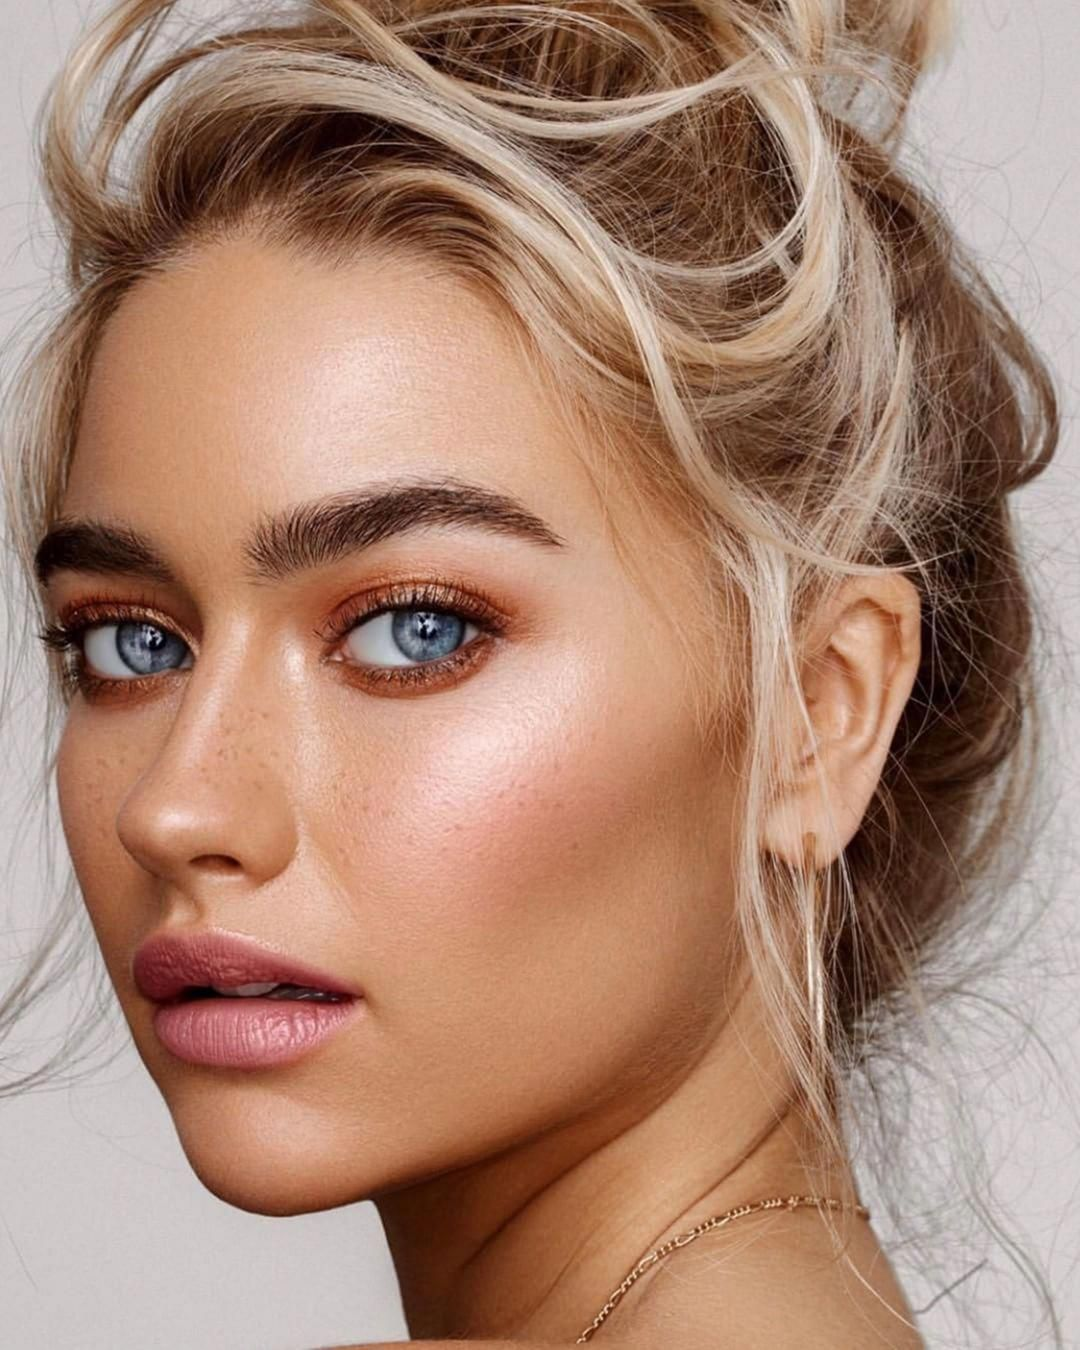 20 Best Makeup Ideas To Get The Perfect Natural Look